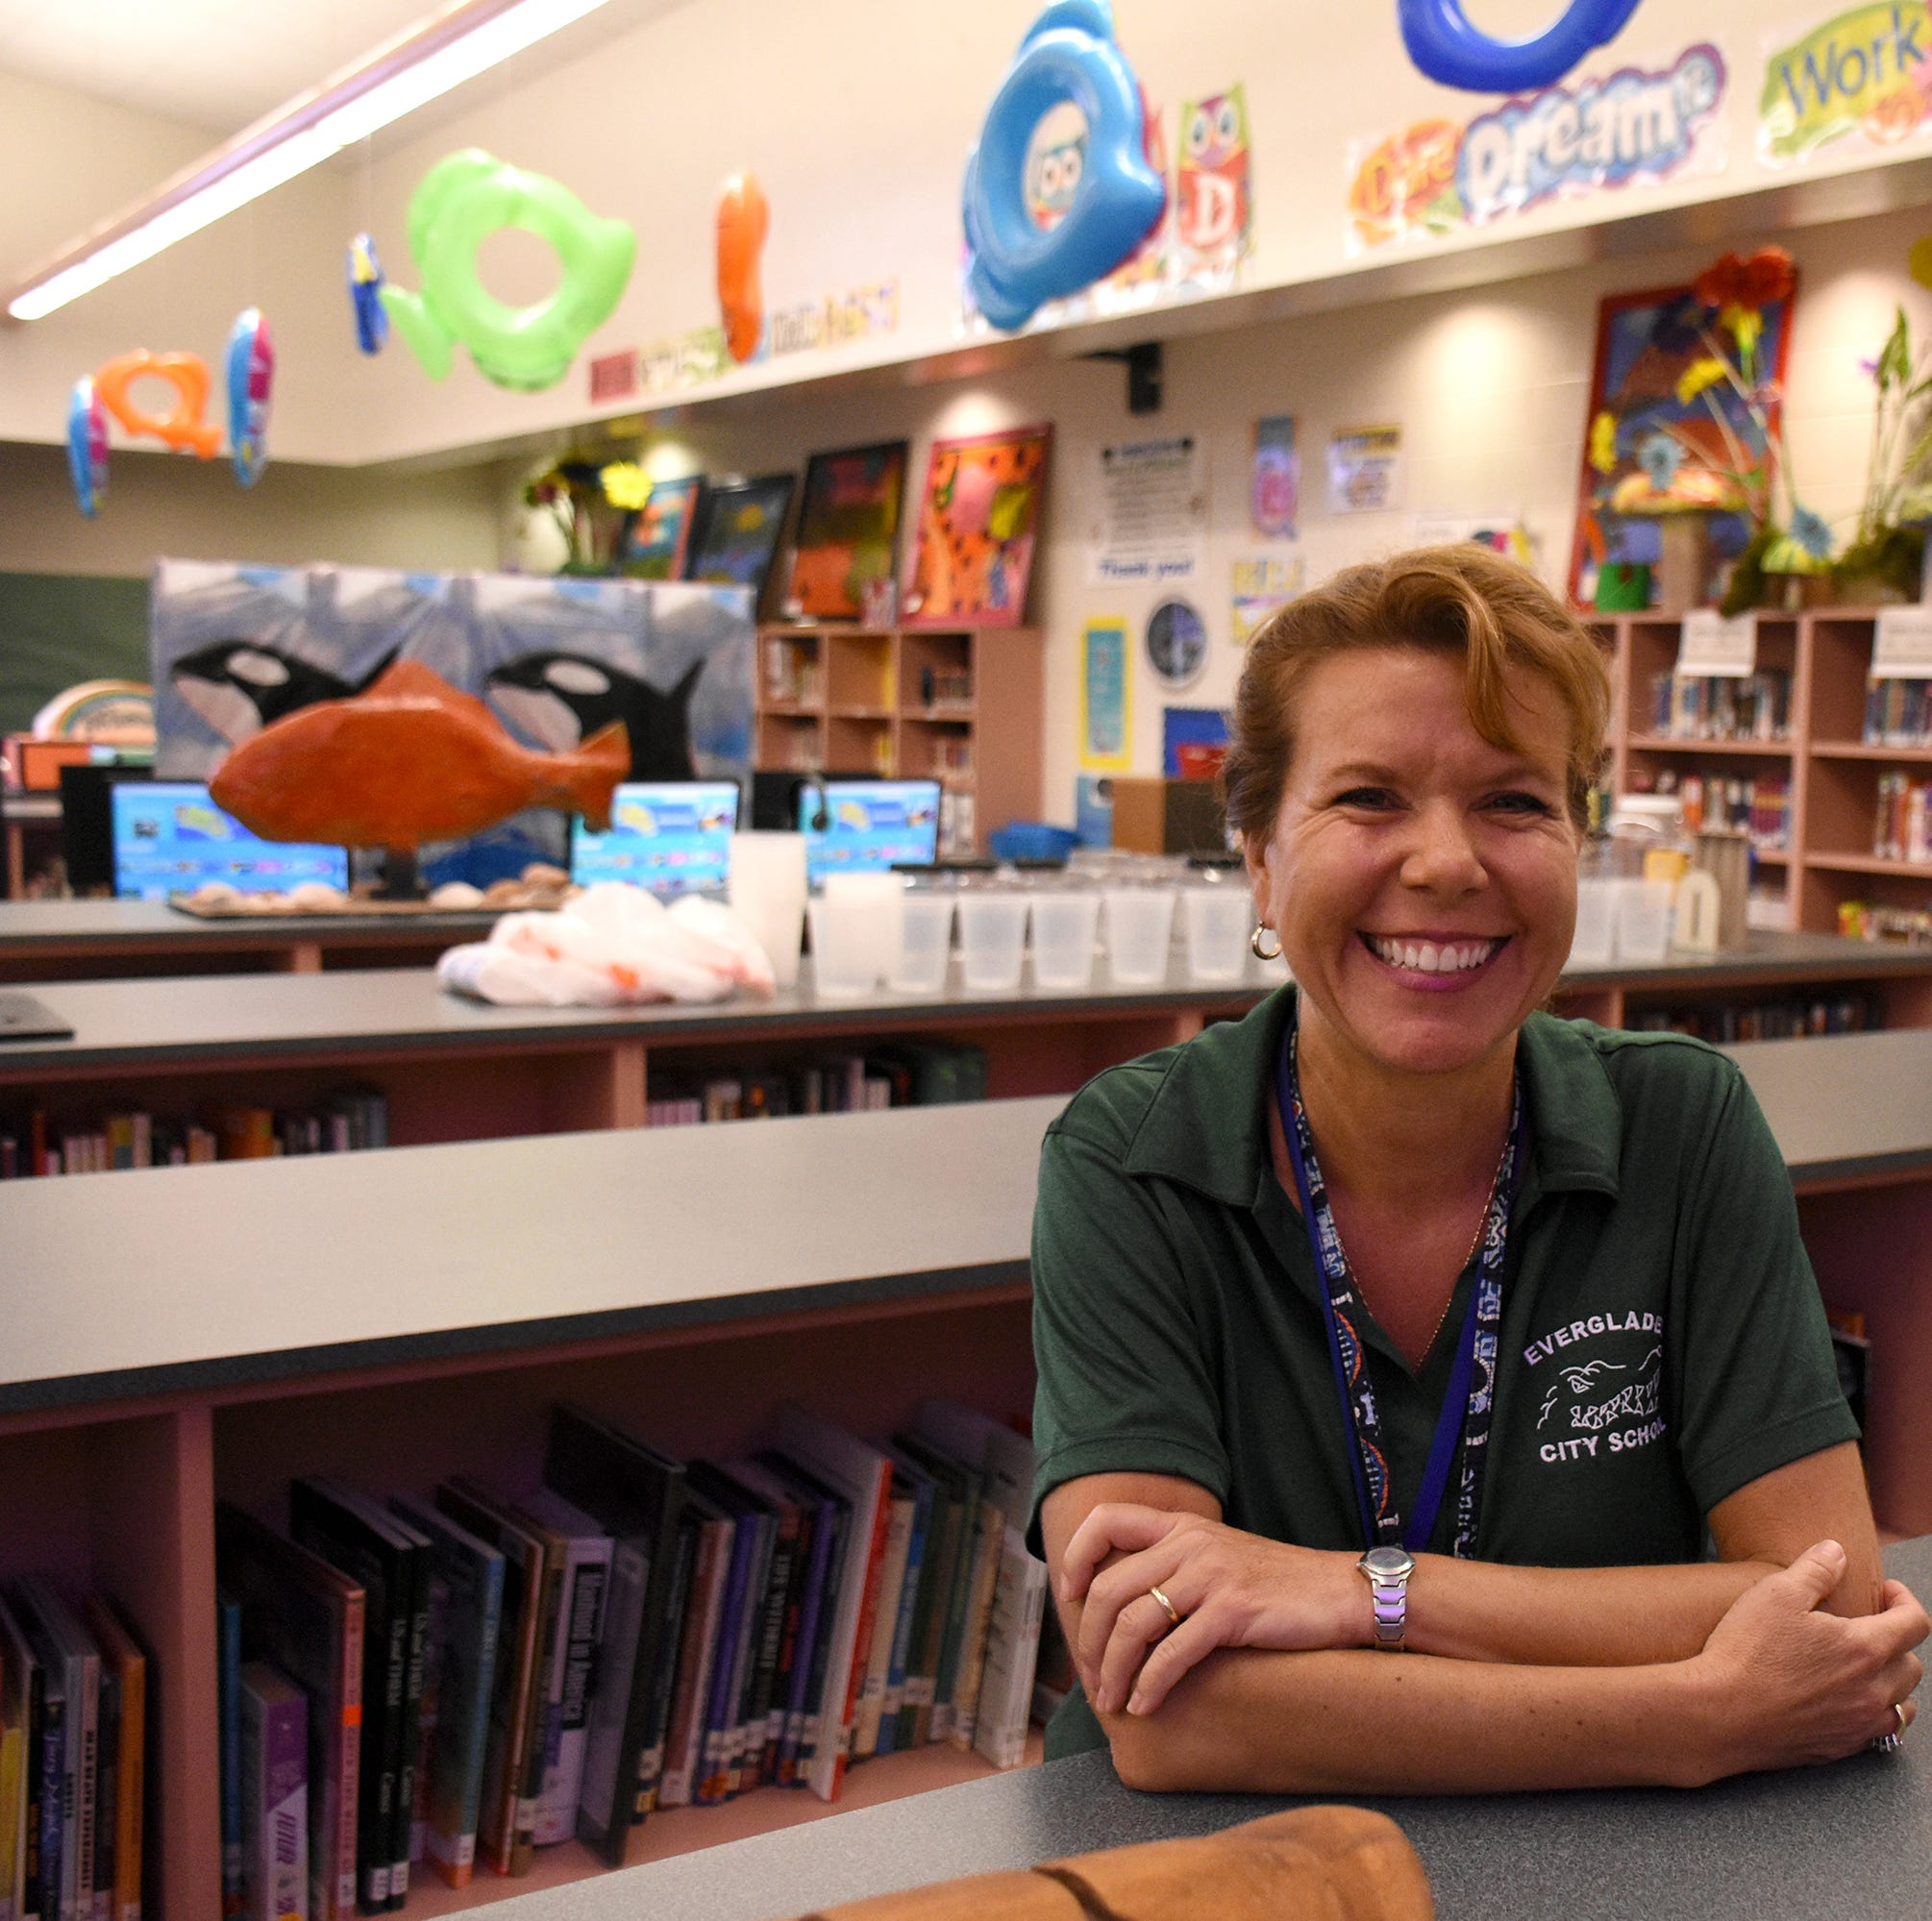 Everglades City School: A cornerstone for the community